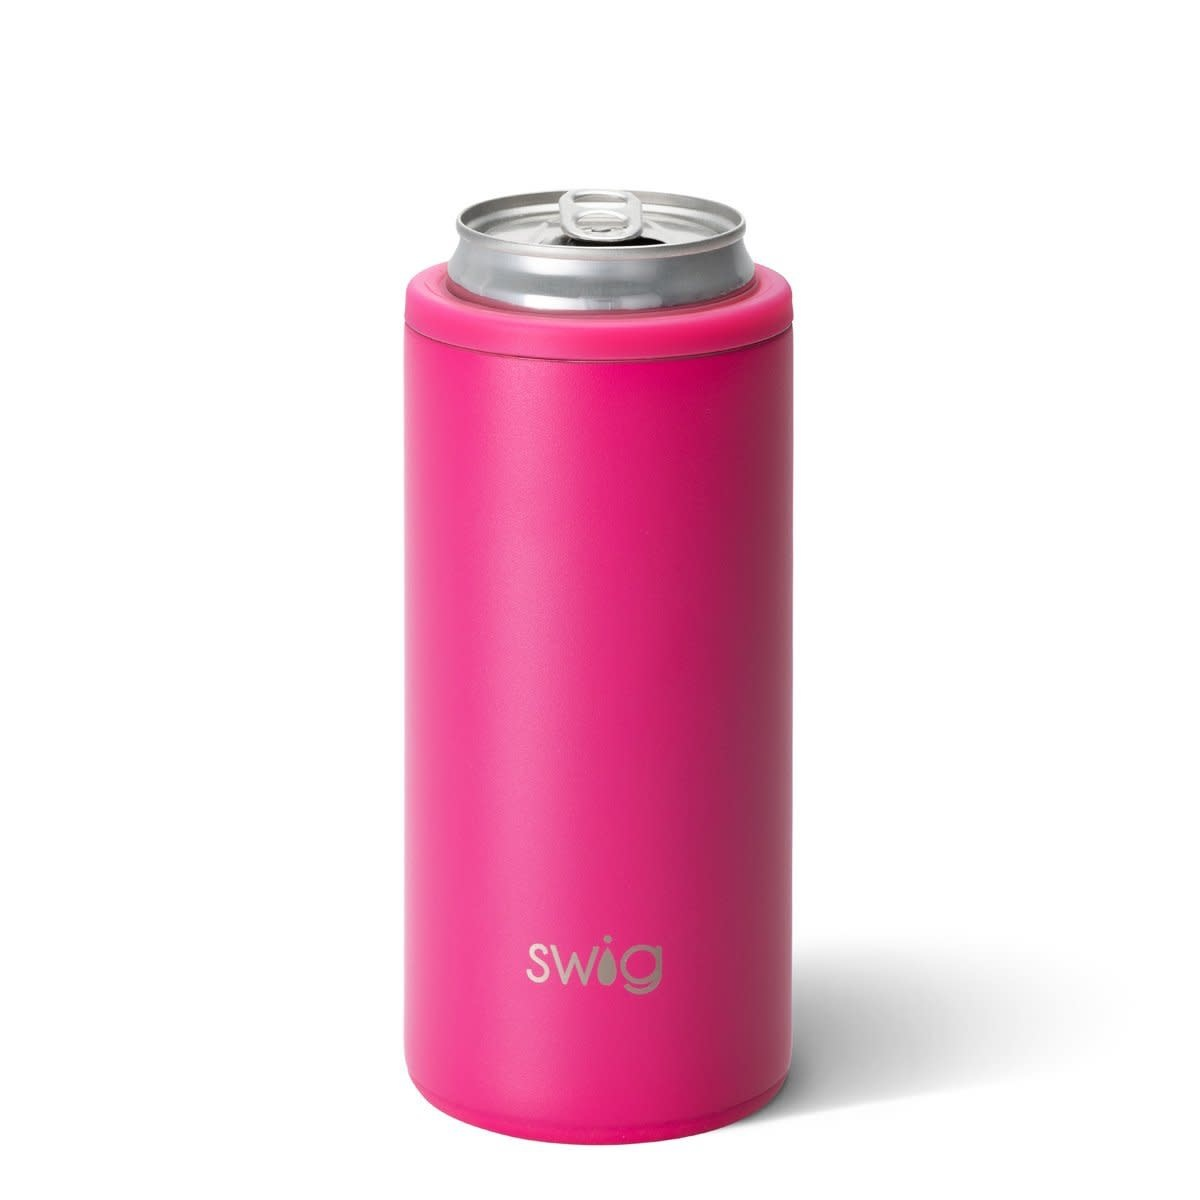 Swig Swig 12oz Solid Can Cooler